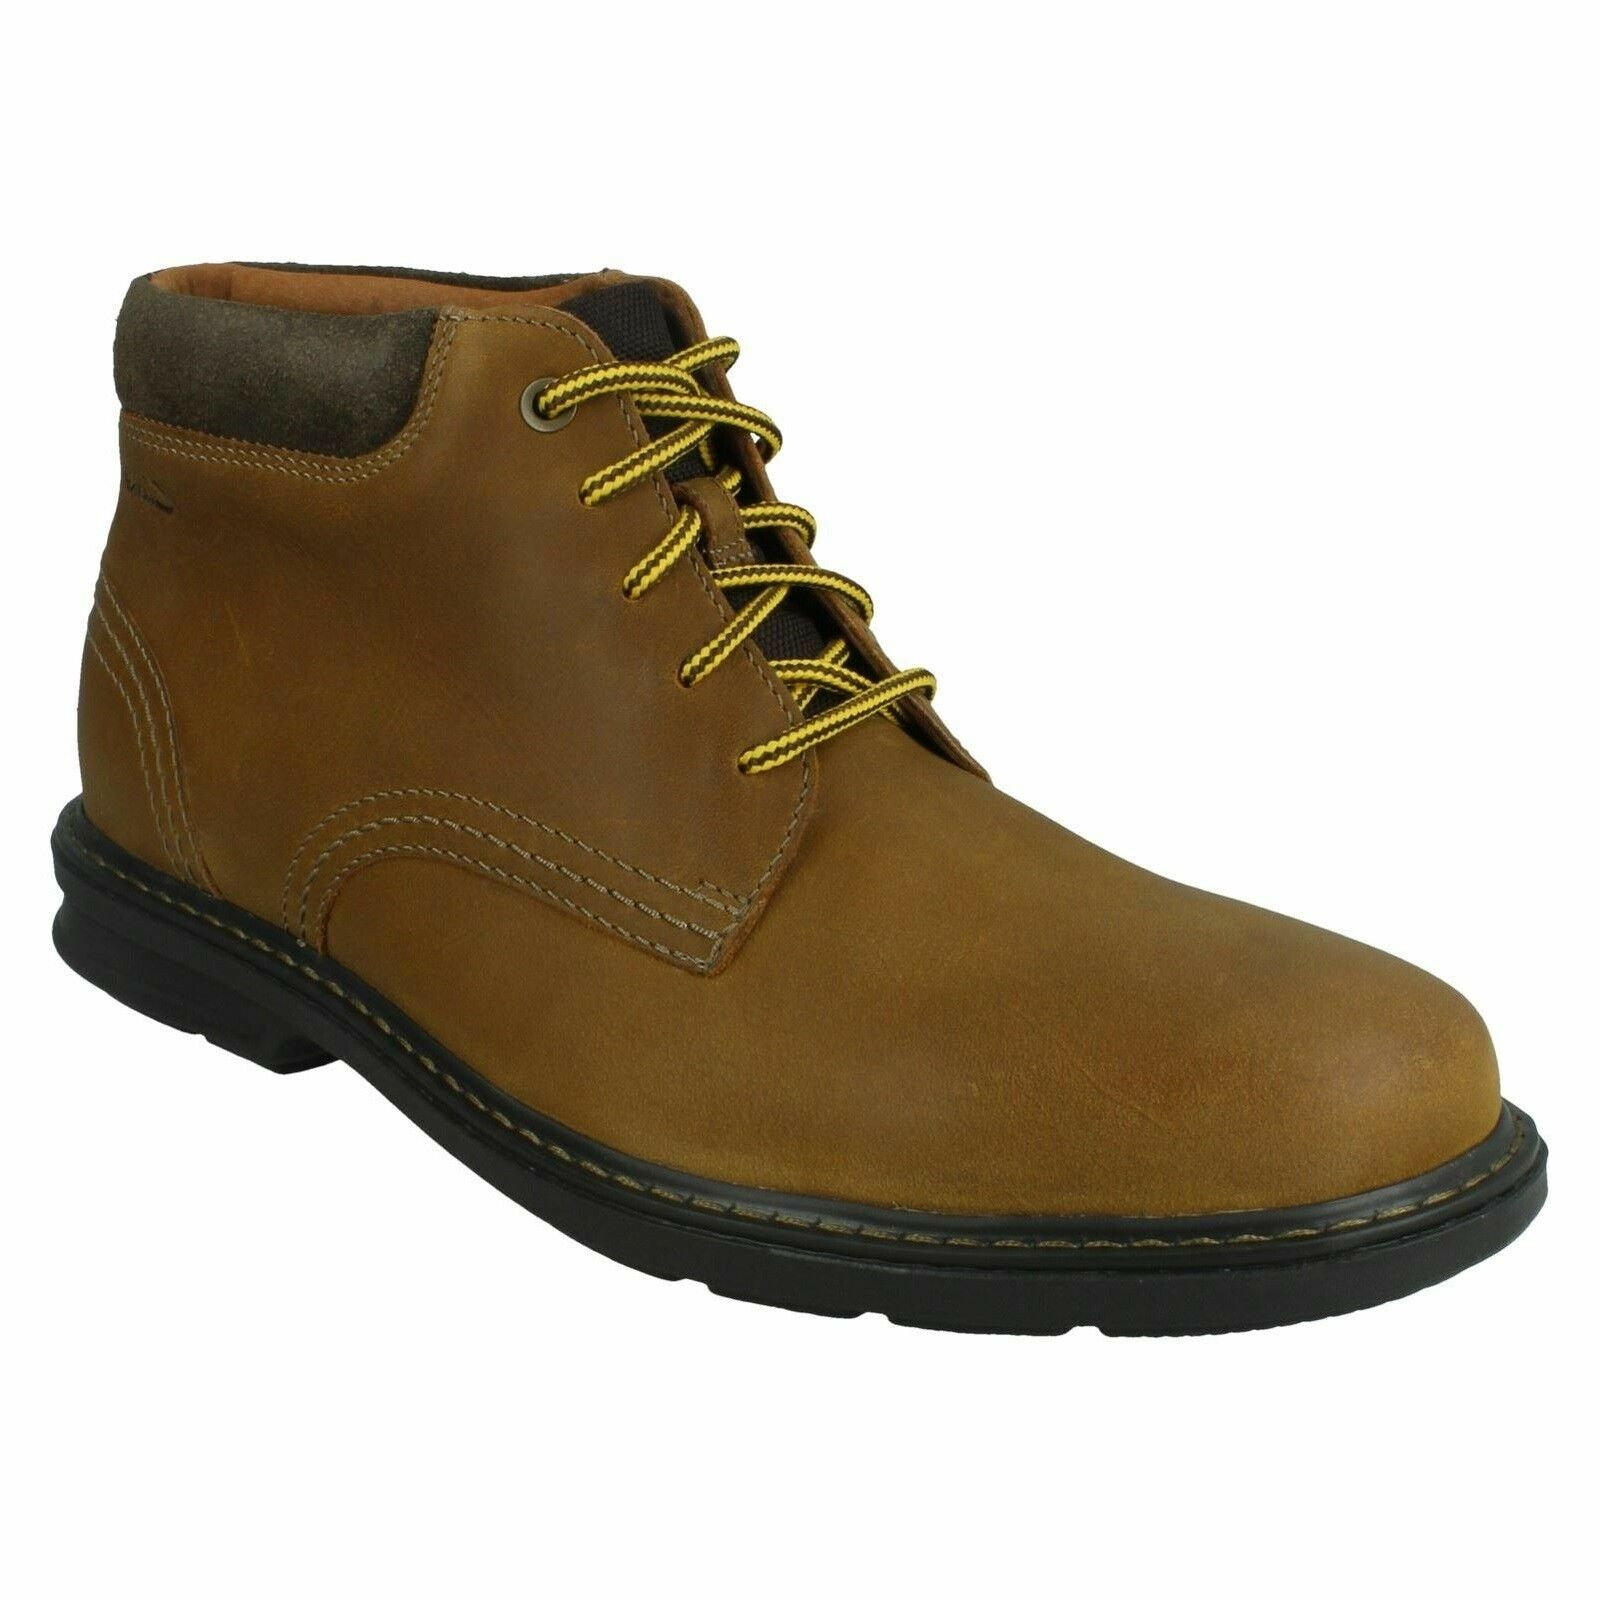 RENDELL WORK MENS CLARKS LEATHER EVERYDAY LACE UP SHOES ANKLE CASUAL BOOTS SIZES